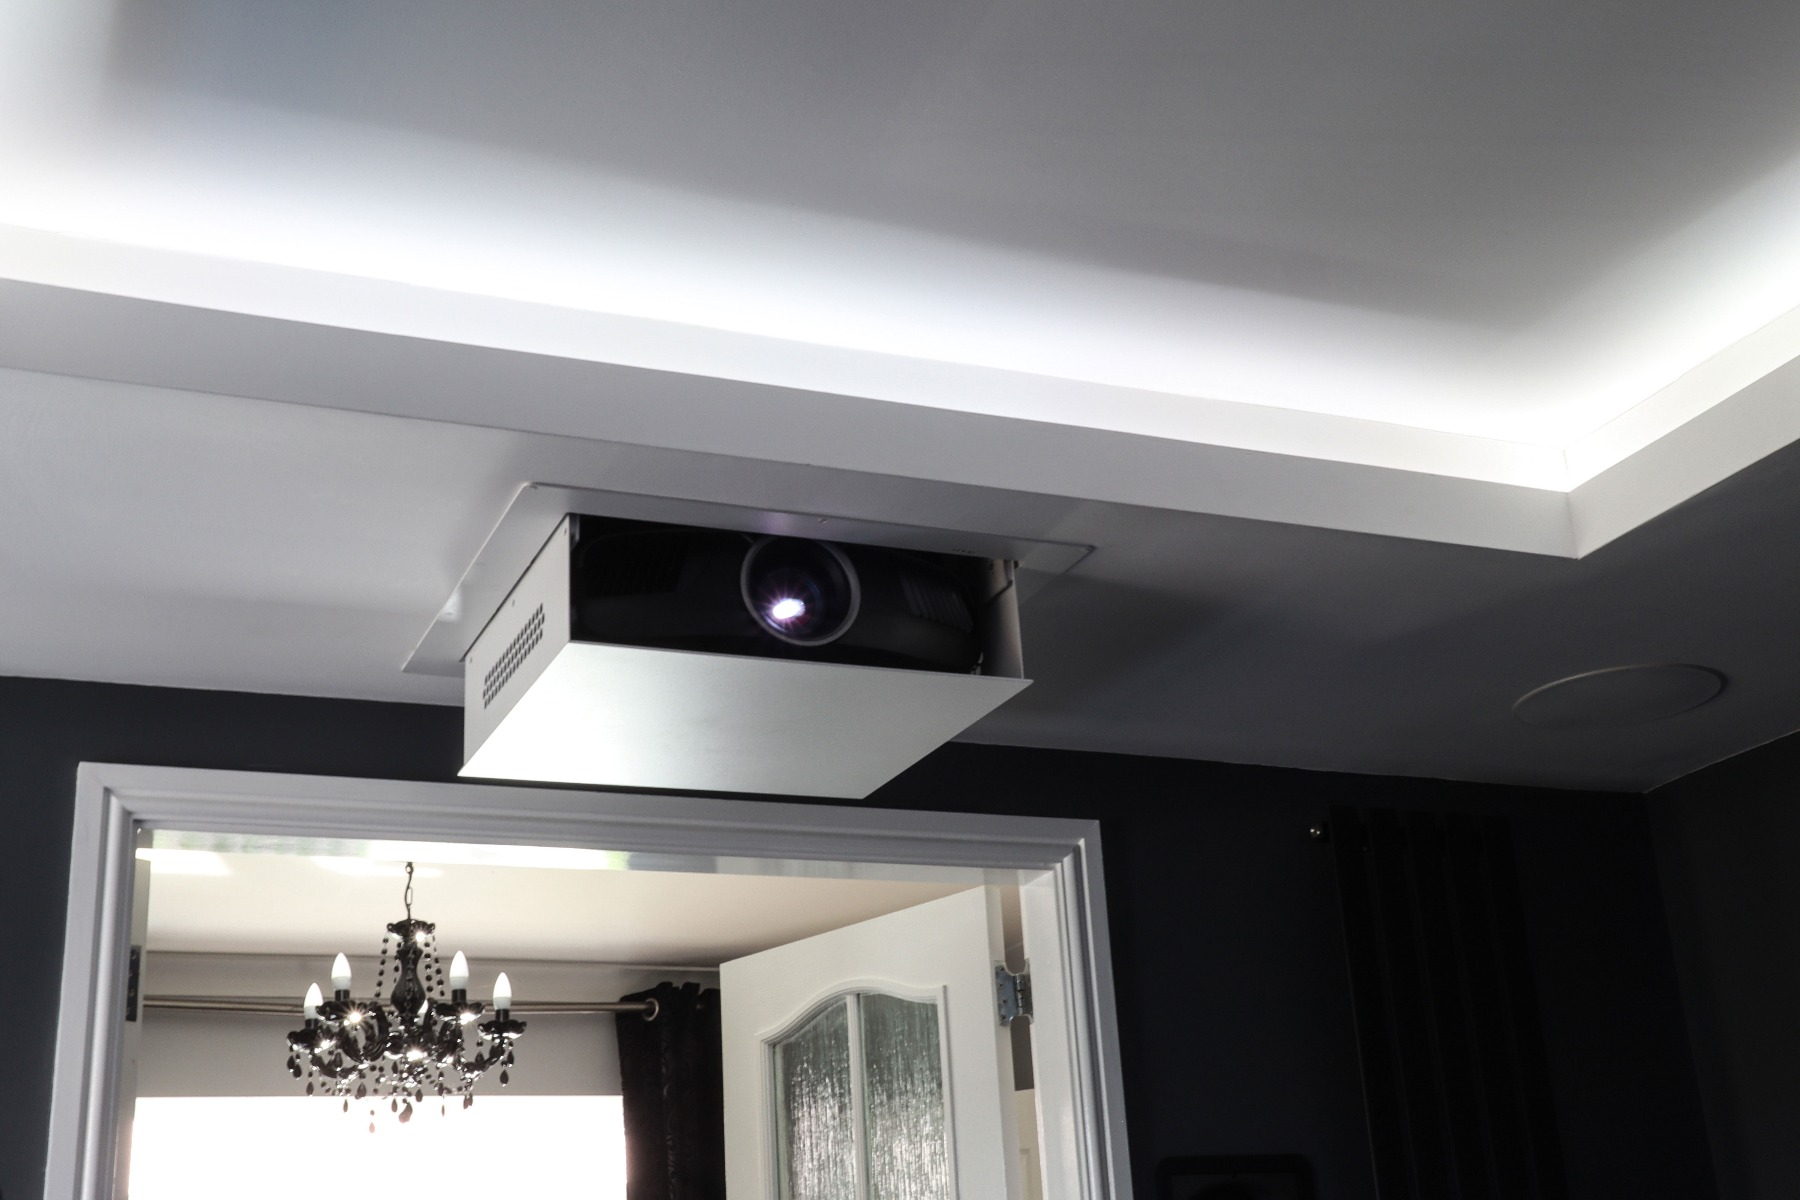 In ceiling recessed projector